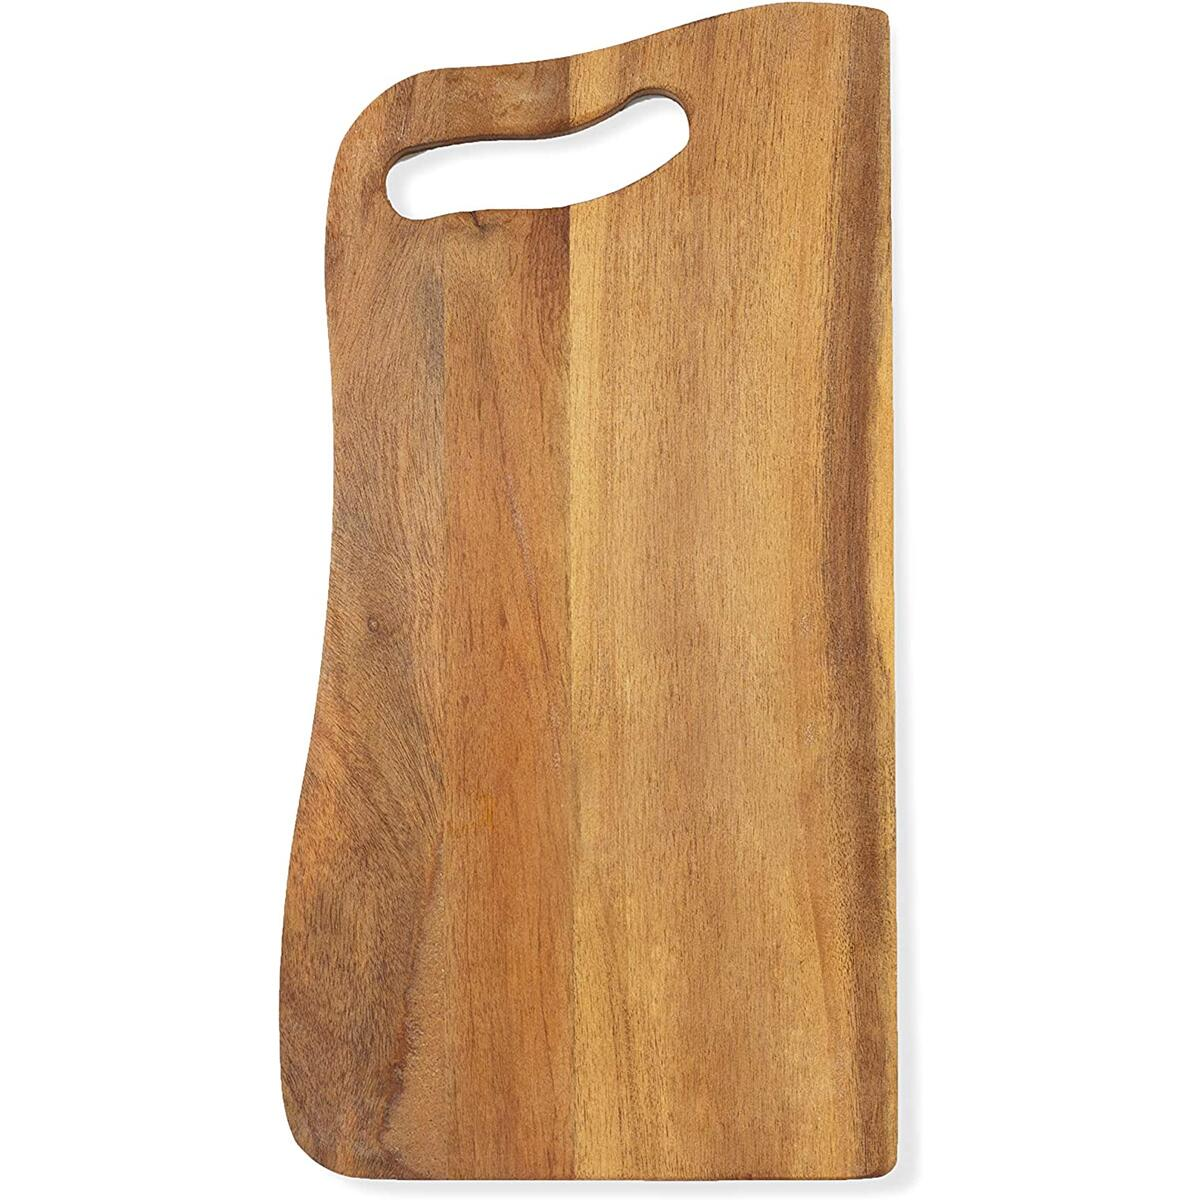 Small Cutting Board with Handle - Natural Wood Cheese Board - Rustic Design - Mini Charcuterie Boards